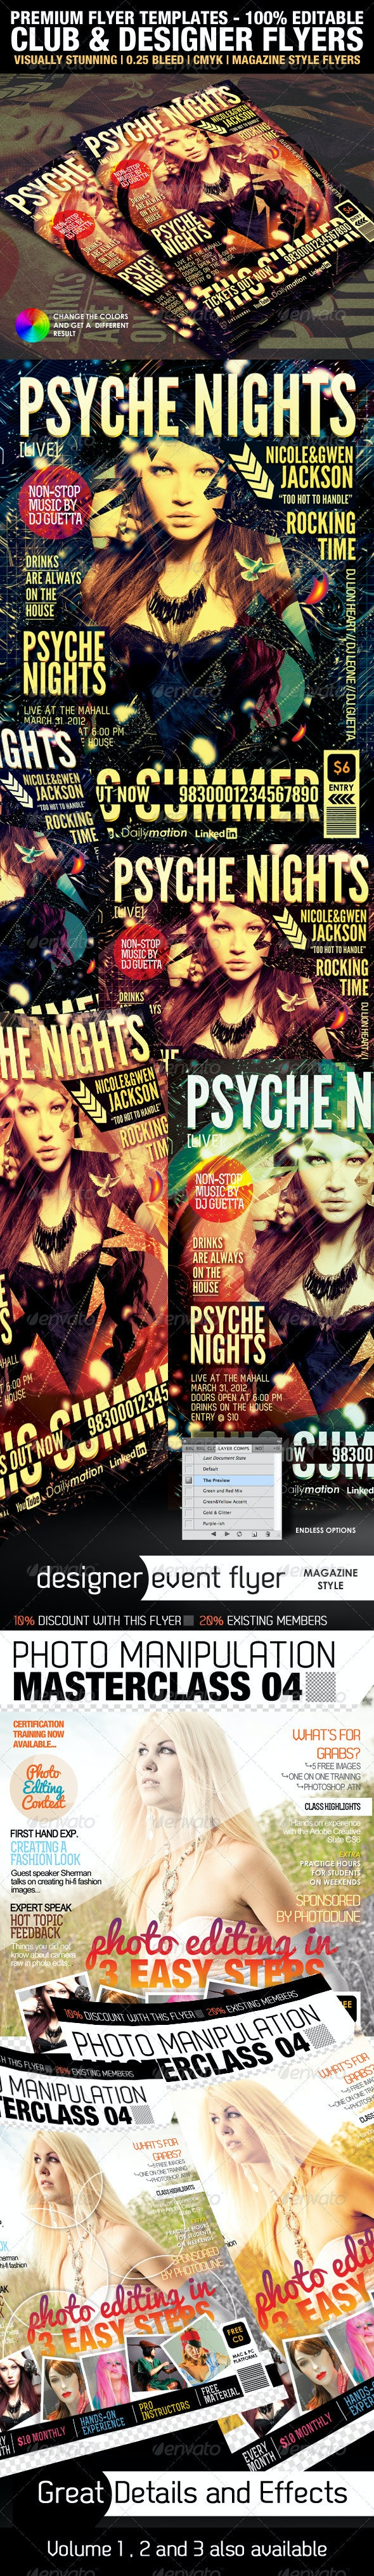 Club & Design Magazine Style Flyer Templates Vol.4 - Clubs & Parties Events